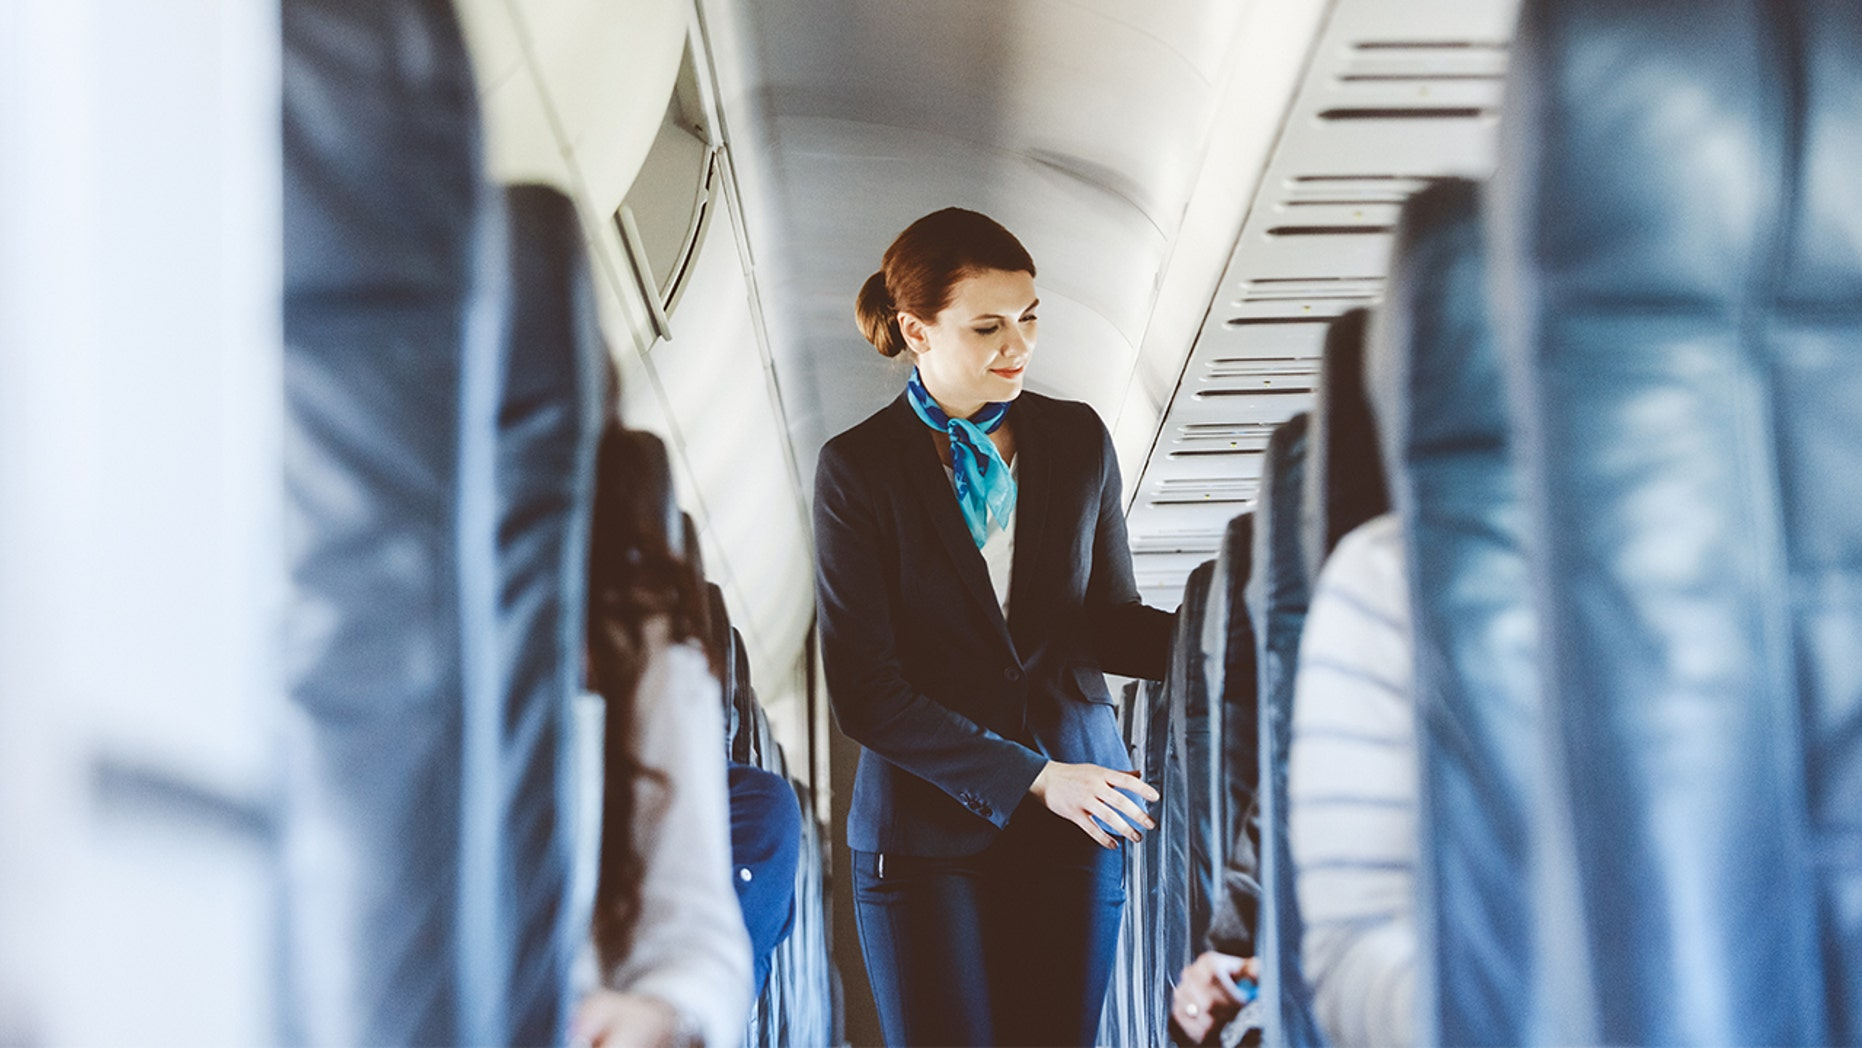 A stewardess for a British airline claims first-class passengers pay the flight attendants for sex.